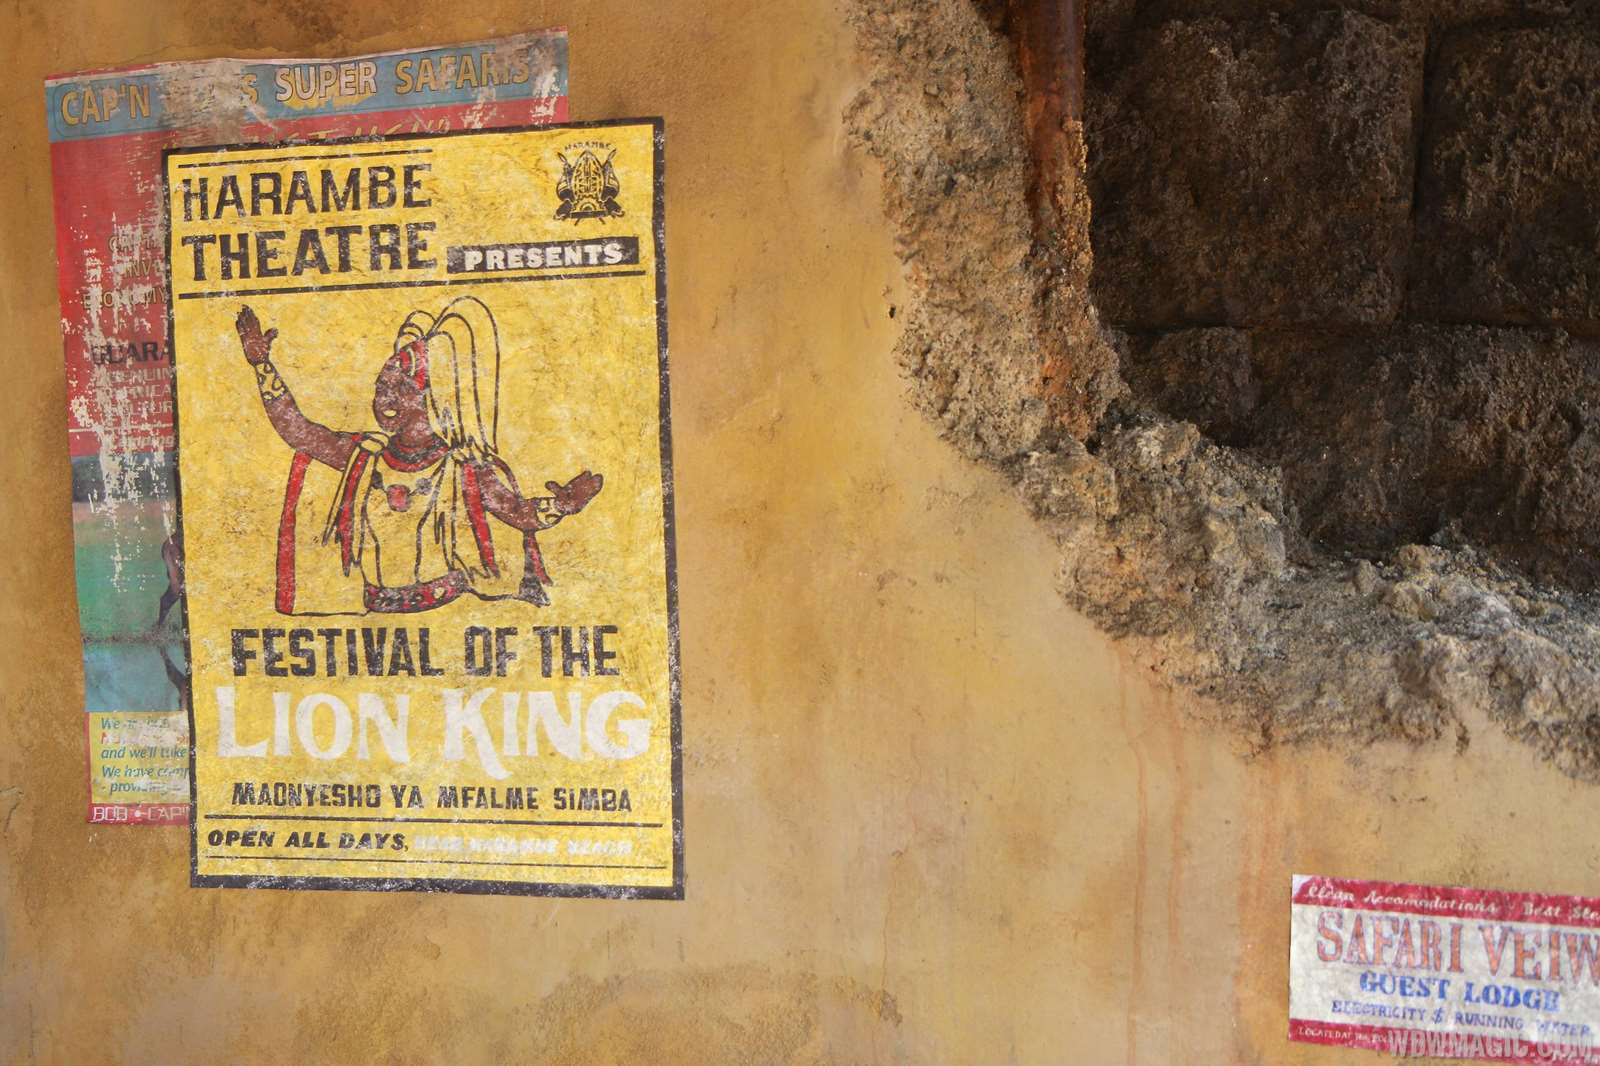 PHOTOS and VIDEO - Take a walkthrough of the new Harambe Theatre ...